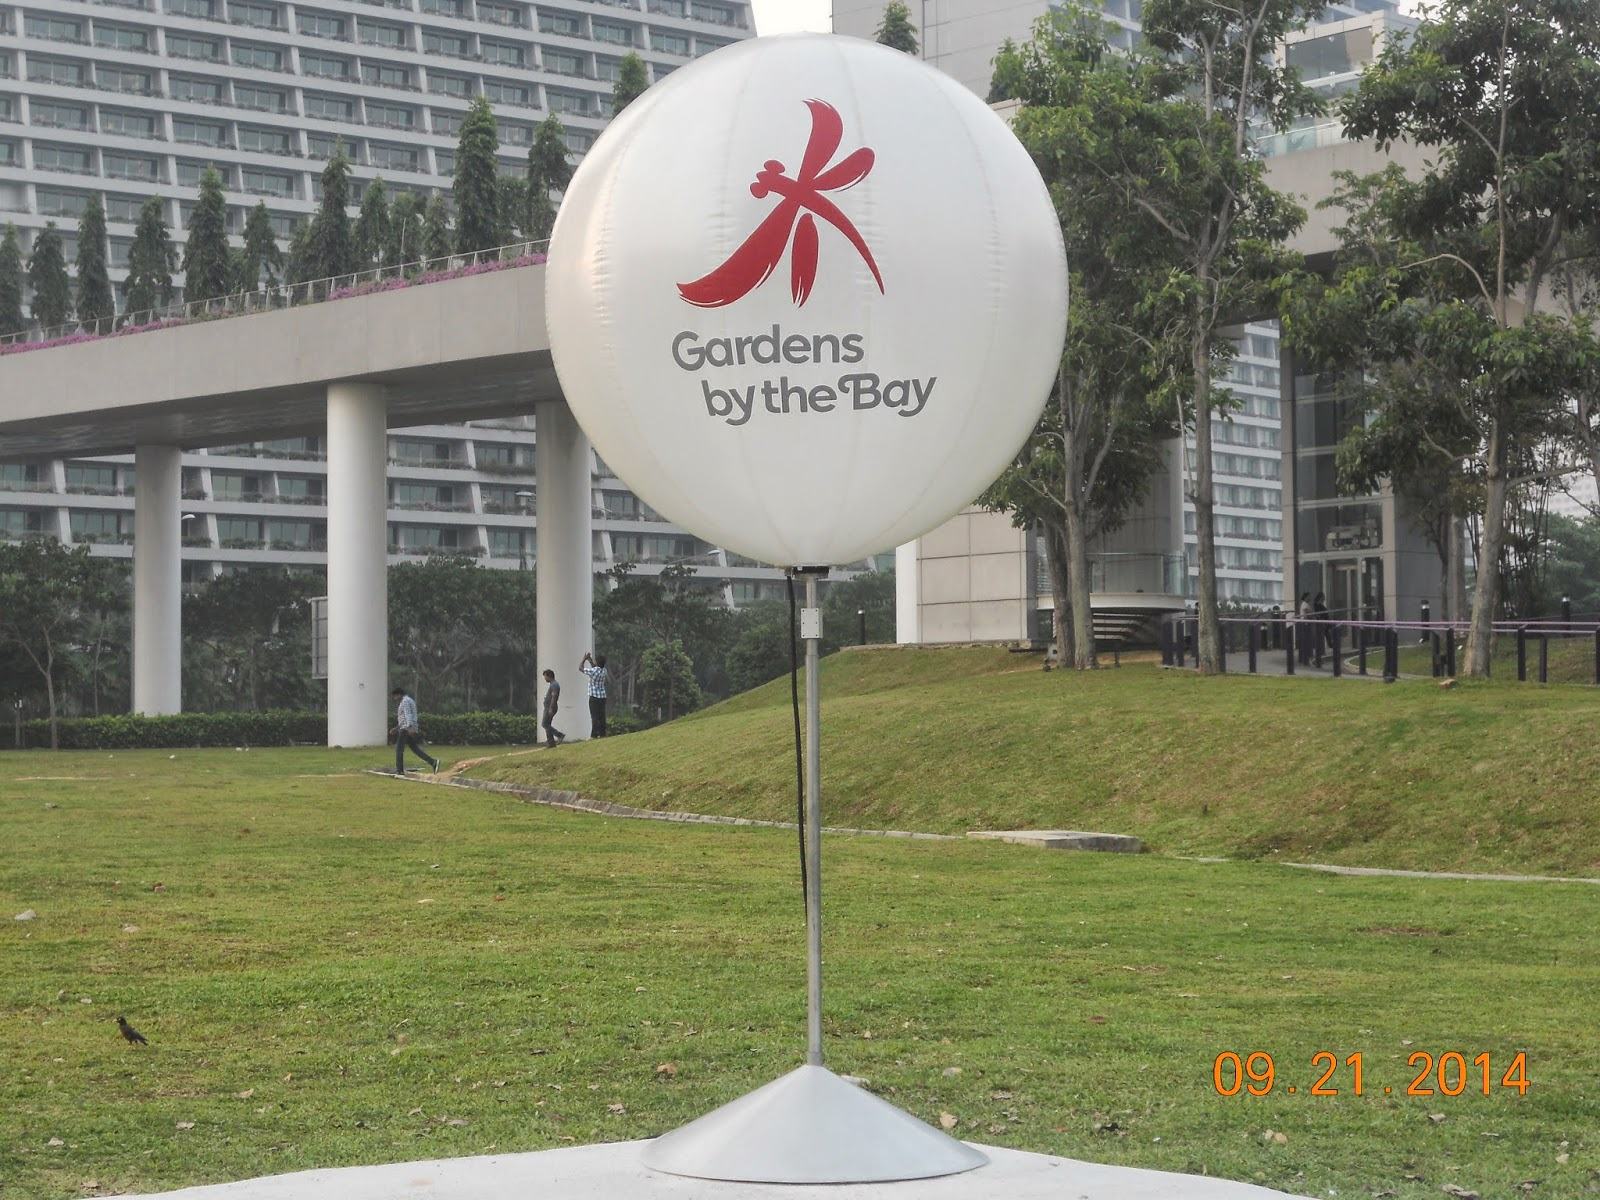 gardens by the bay one of the top place to visit in singapore you can go there by stopping at bayfront mrt station